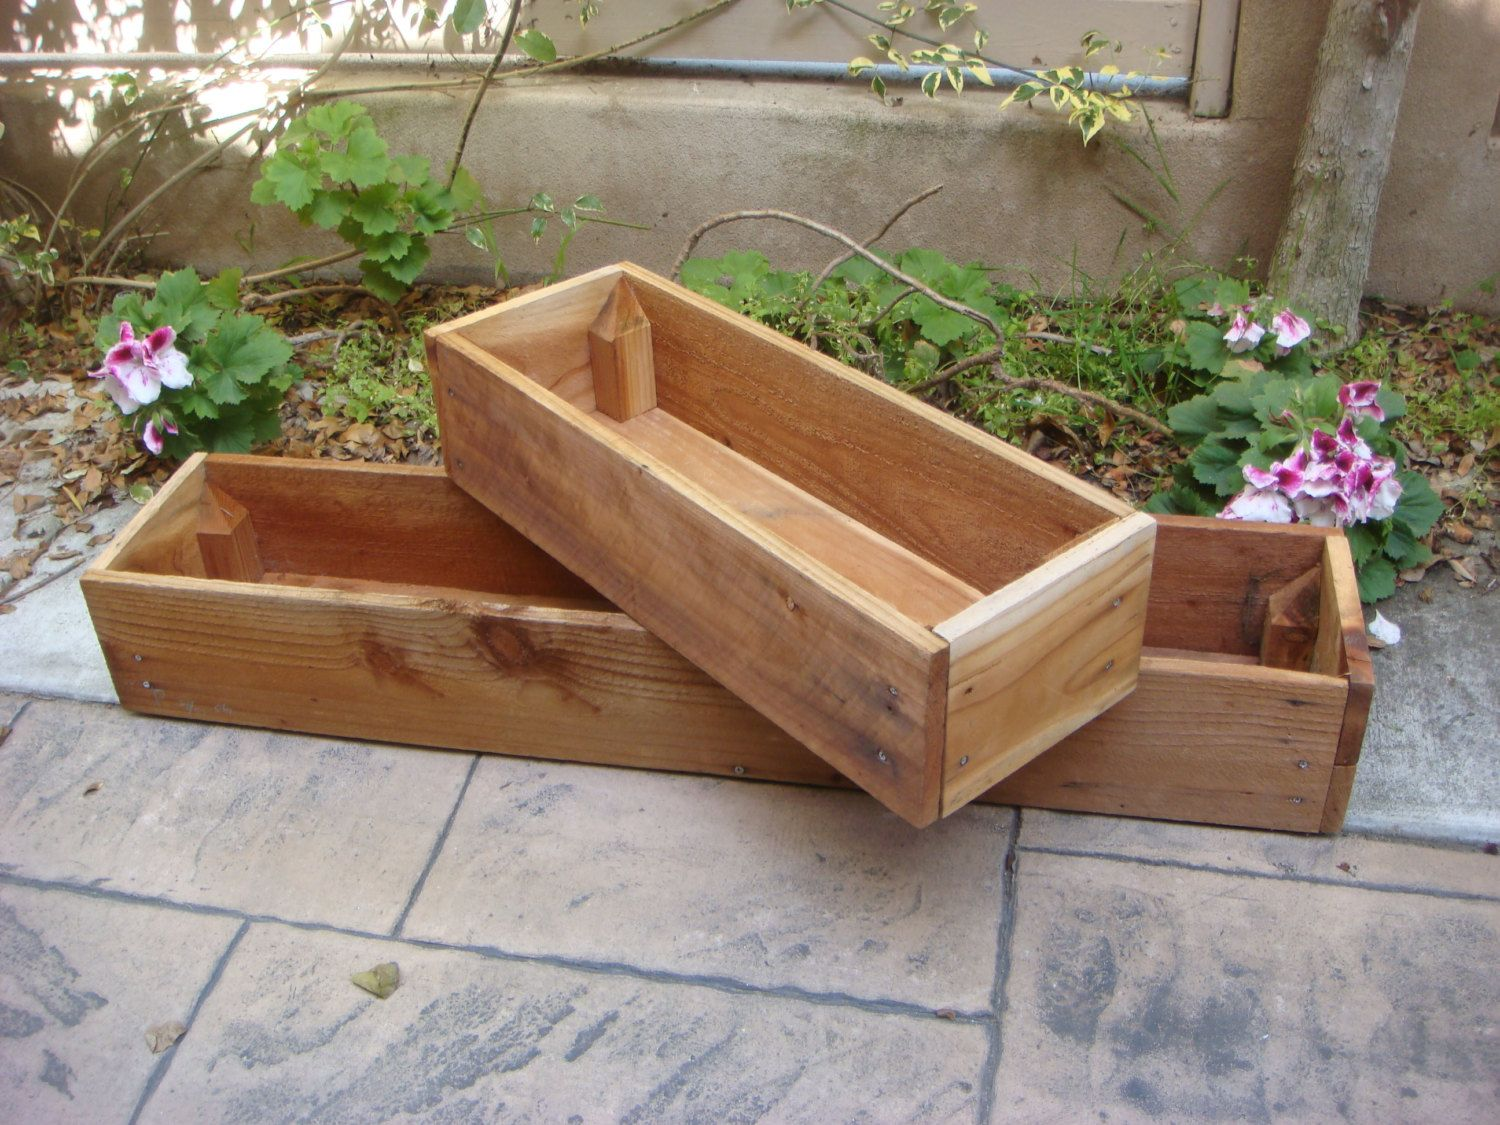 Superb Choosing Wooden Planters | Home And Interior Design Ideas